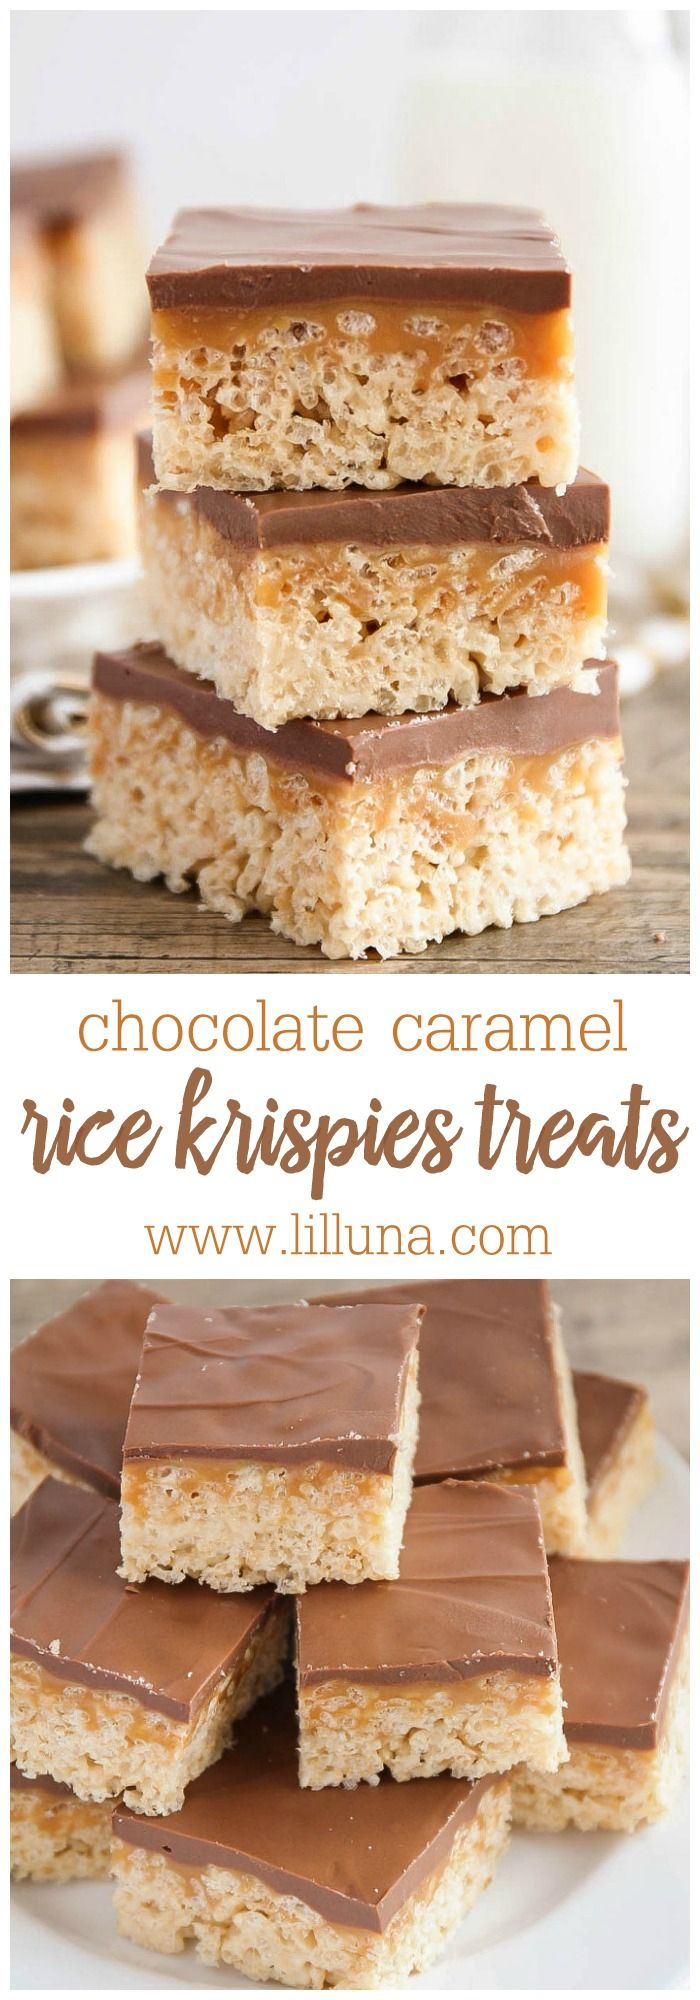 Delicious Chocolate Caramel Peanut Butter Rice Krispies Treats { lilluna.com } A layer of rice krispies, caramel, and melted chocolate chips with peanut butter.